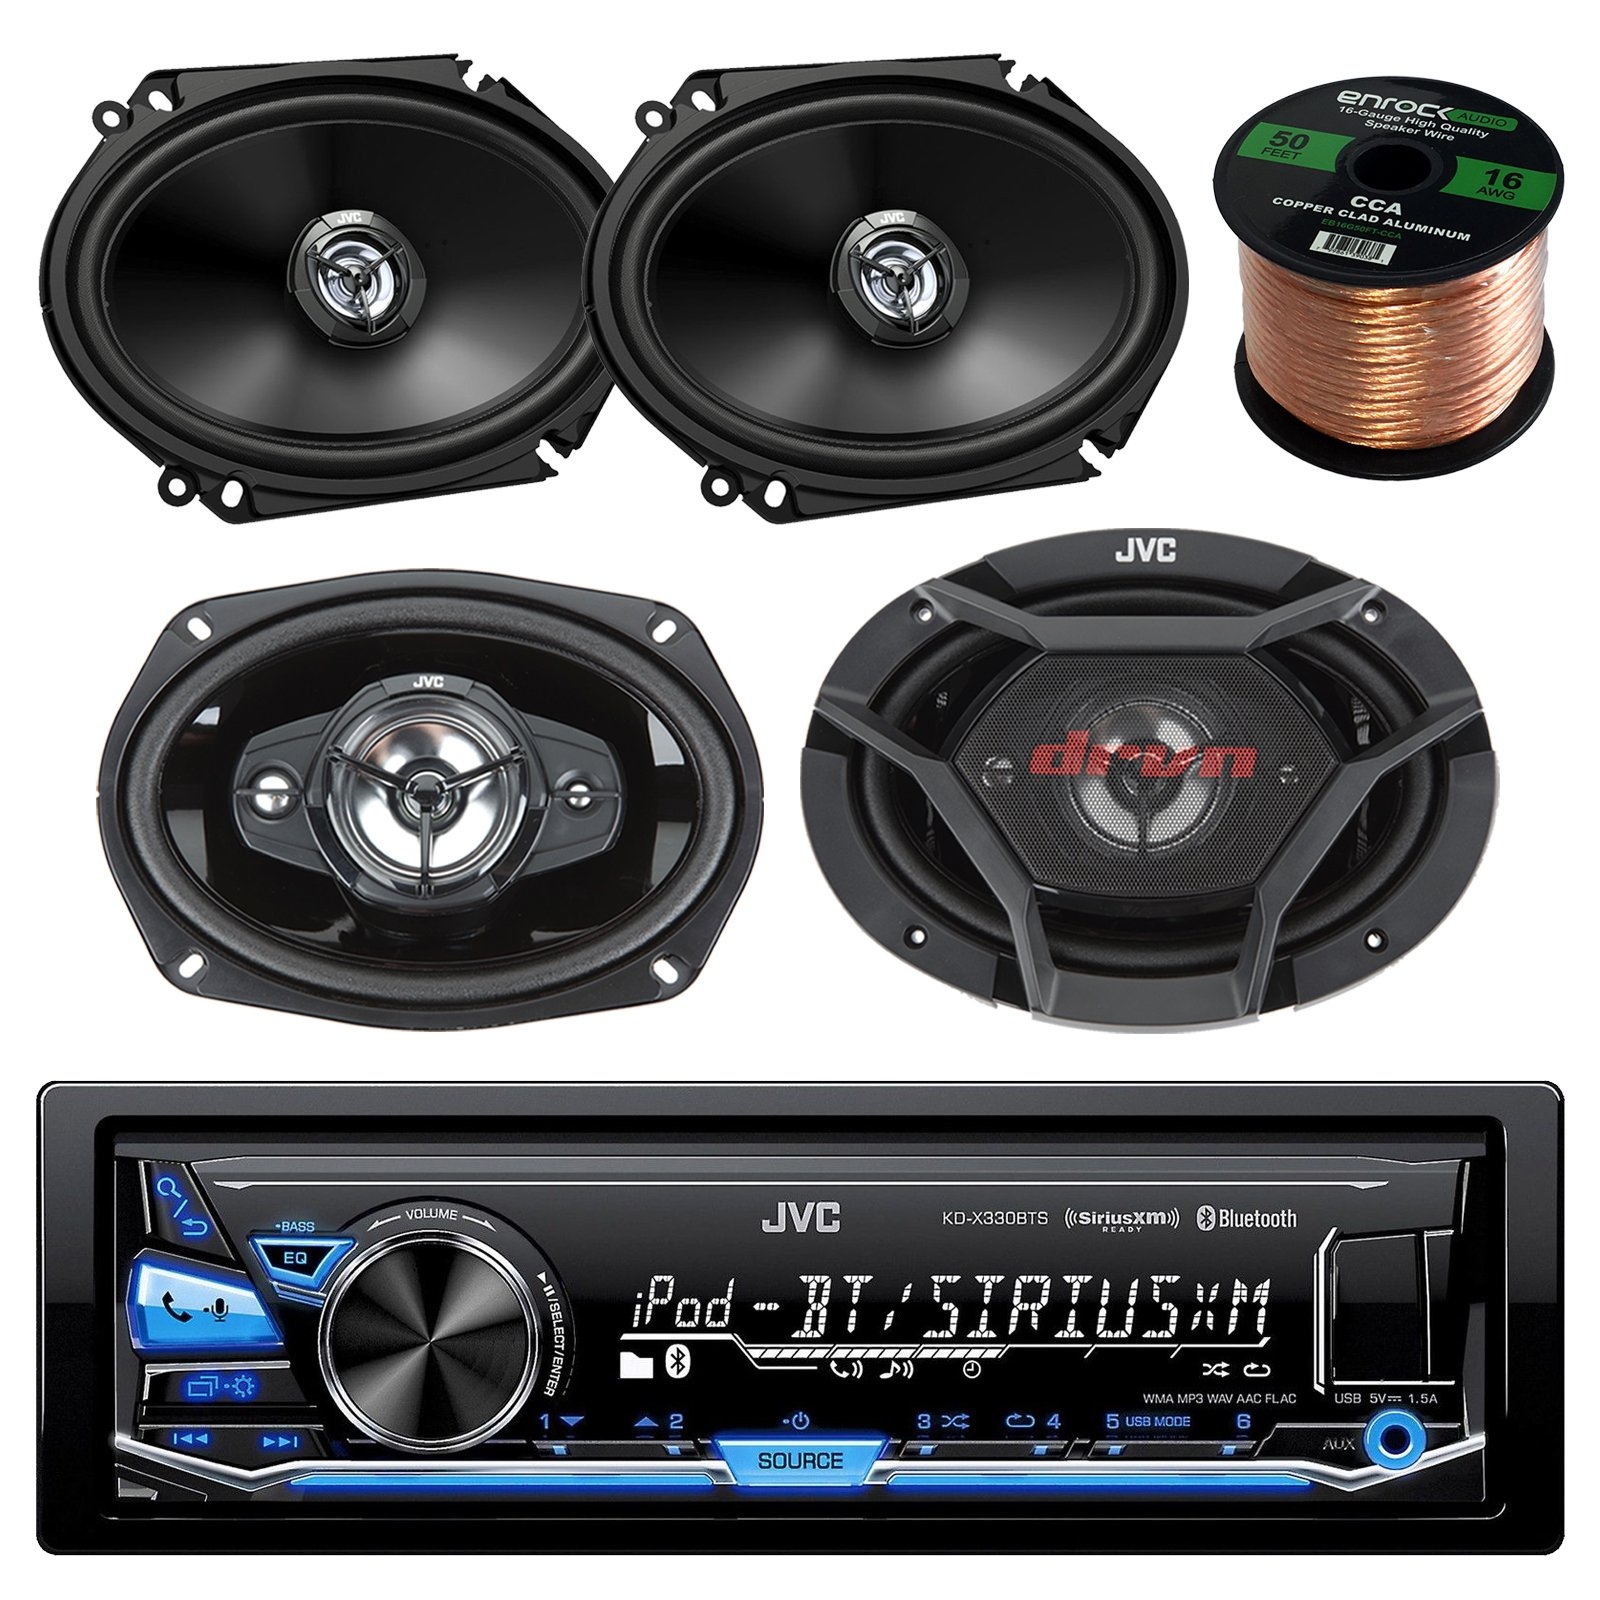 JVC KD-X330BTS AM/FM USB AUX Car Stereo Receiver Bundle Combo With 2x CS-DR6820 300-Watt 6x8'' Inch Vehicle Coaxial Speakers + 2x DR6930 6x9'' Inch 3-Way Audio Speakers + Enrock 50 Feet 16-Gauge Wire